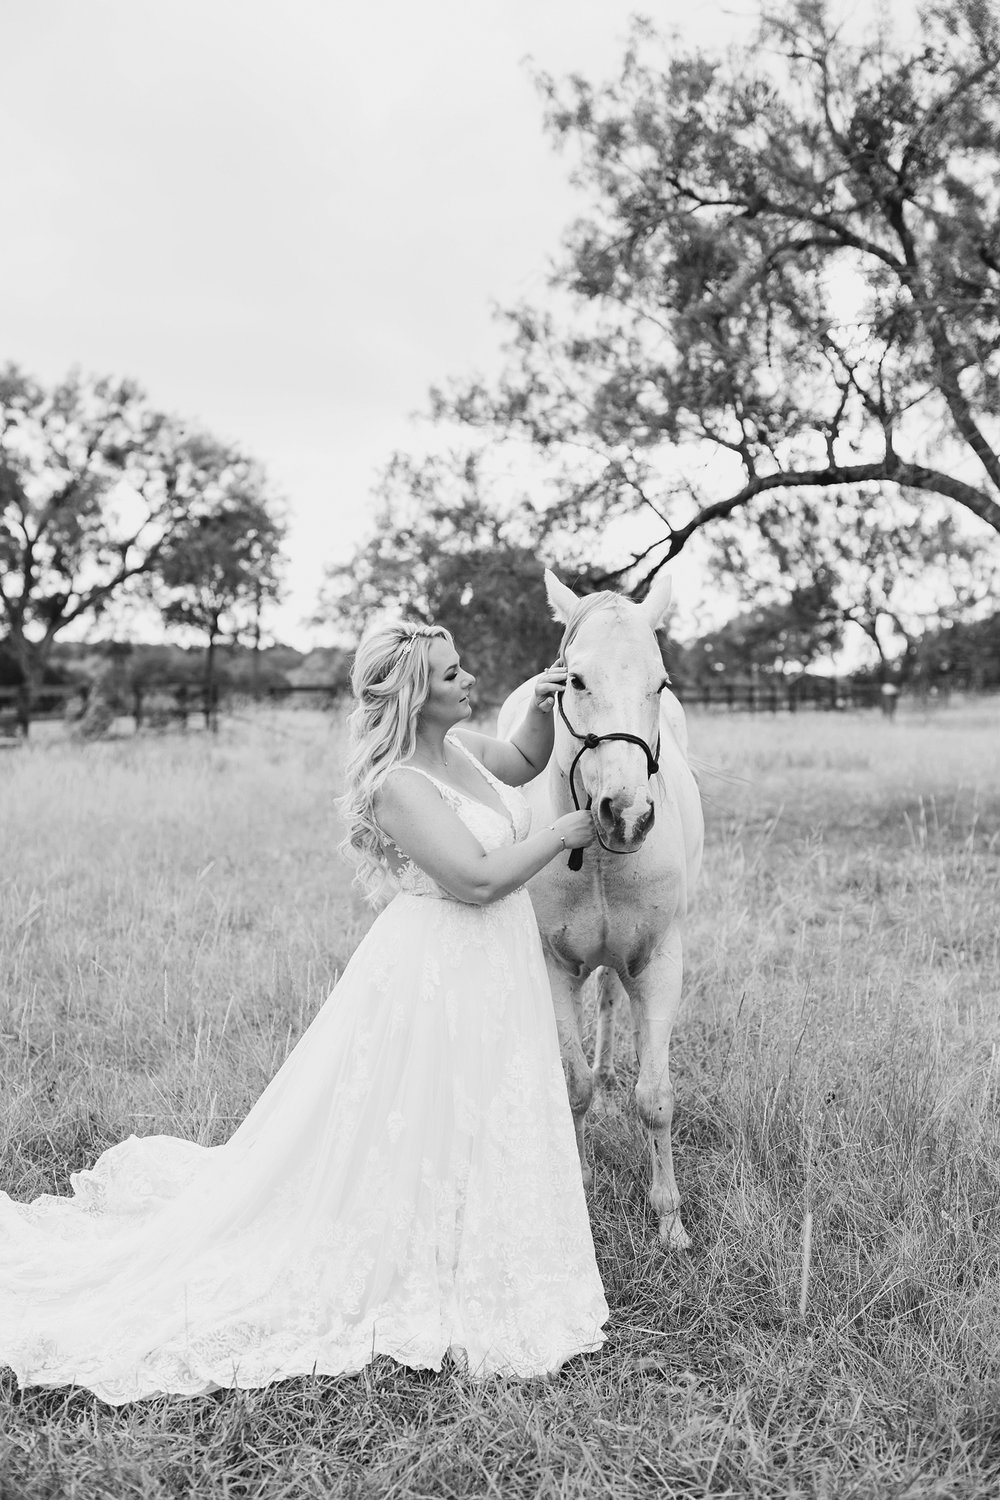 Austin_Wedding_Photographer_Kimberly_Brooke_Photographic_174.jpg